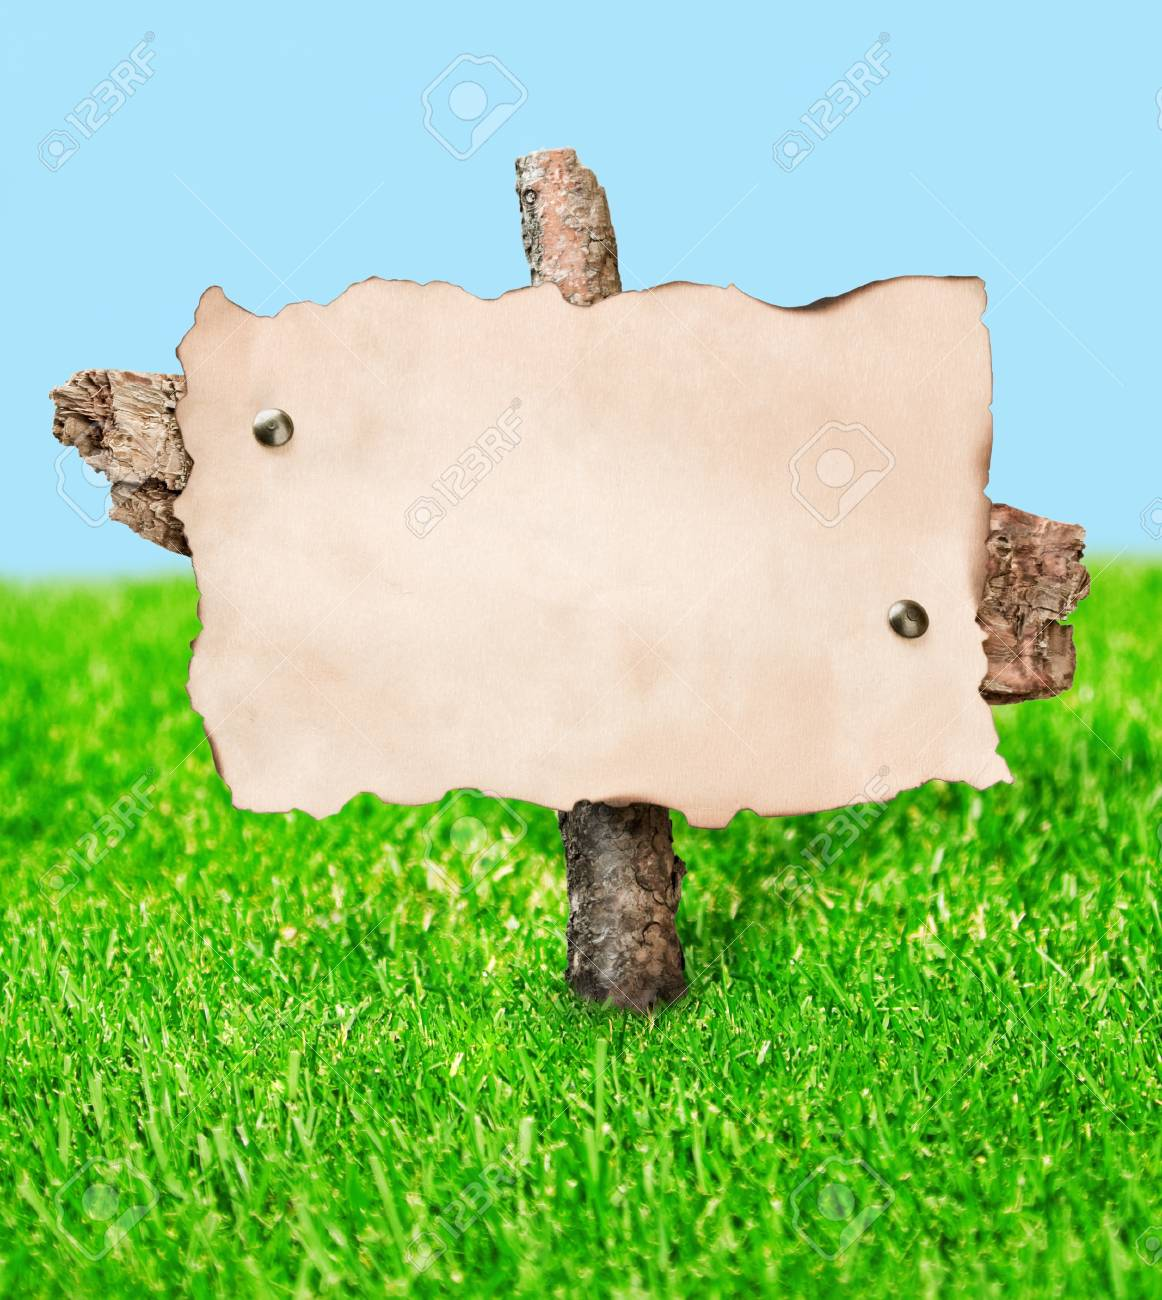 blank billboard stands in a field on a background of grass and sky Stock Photo - 13907530